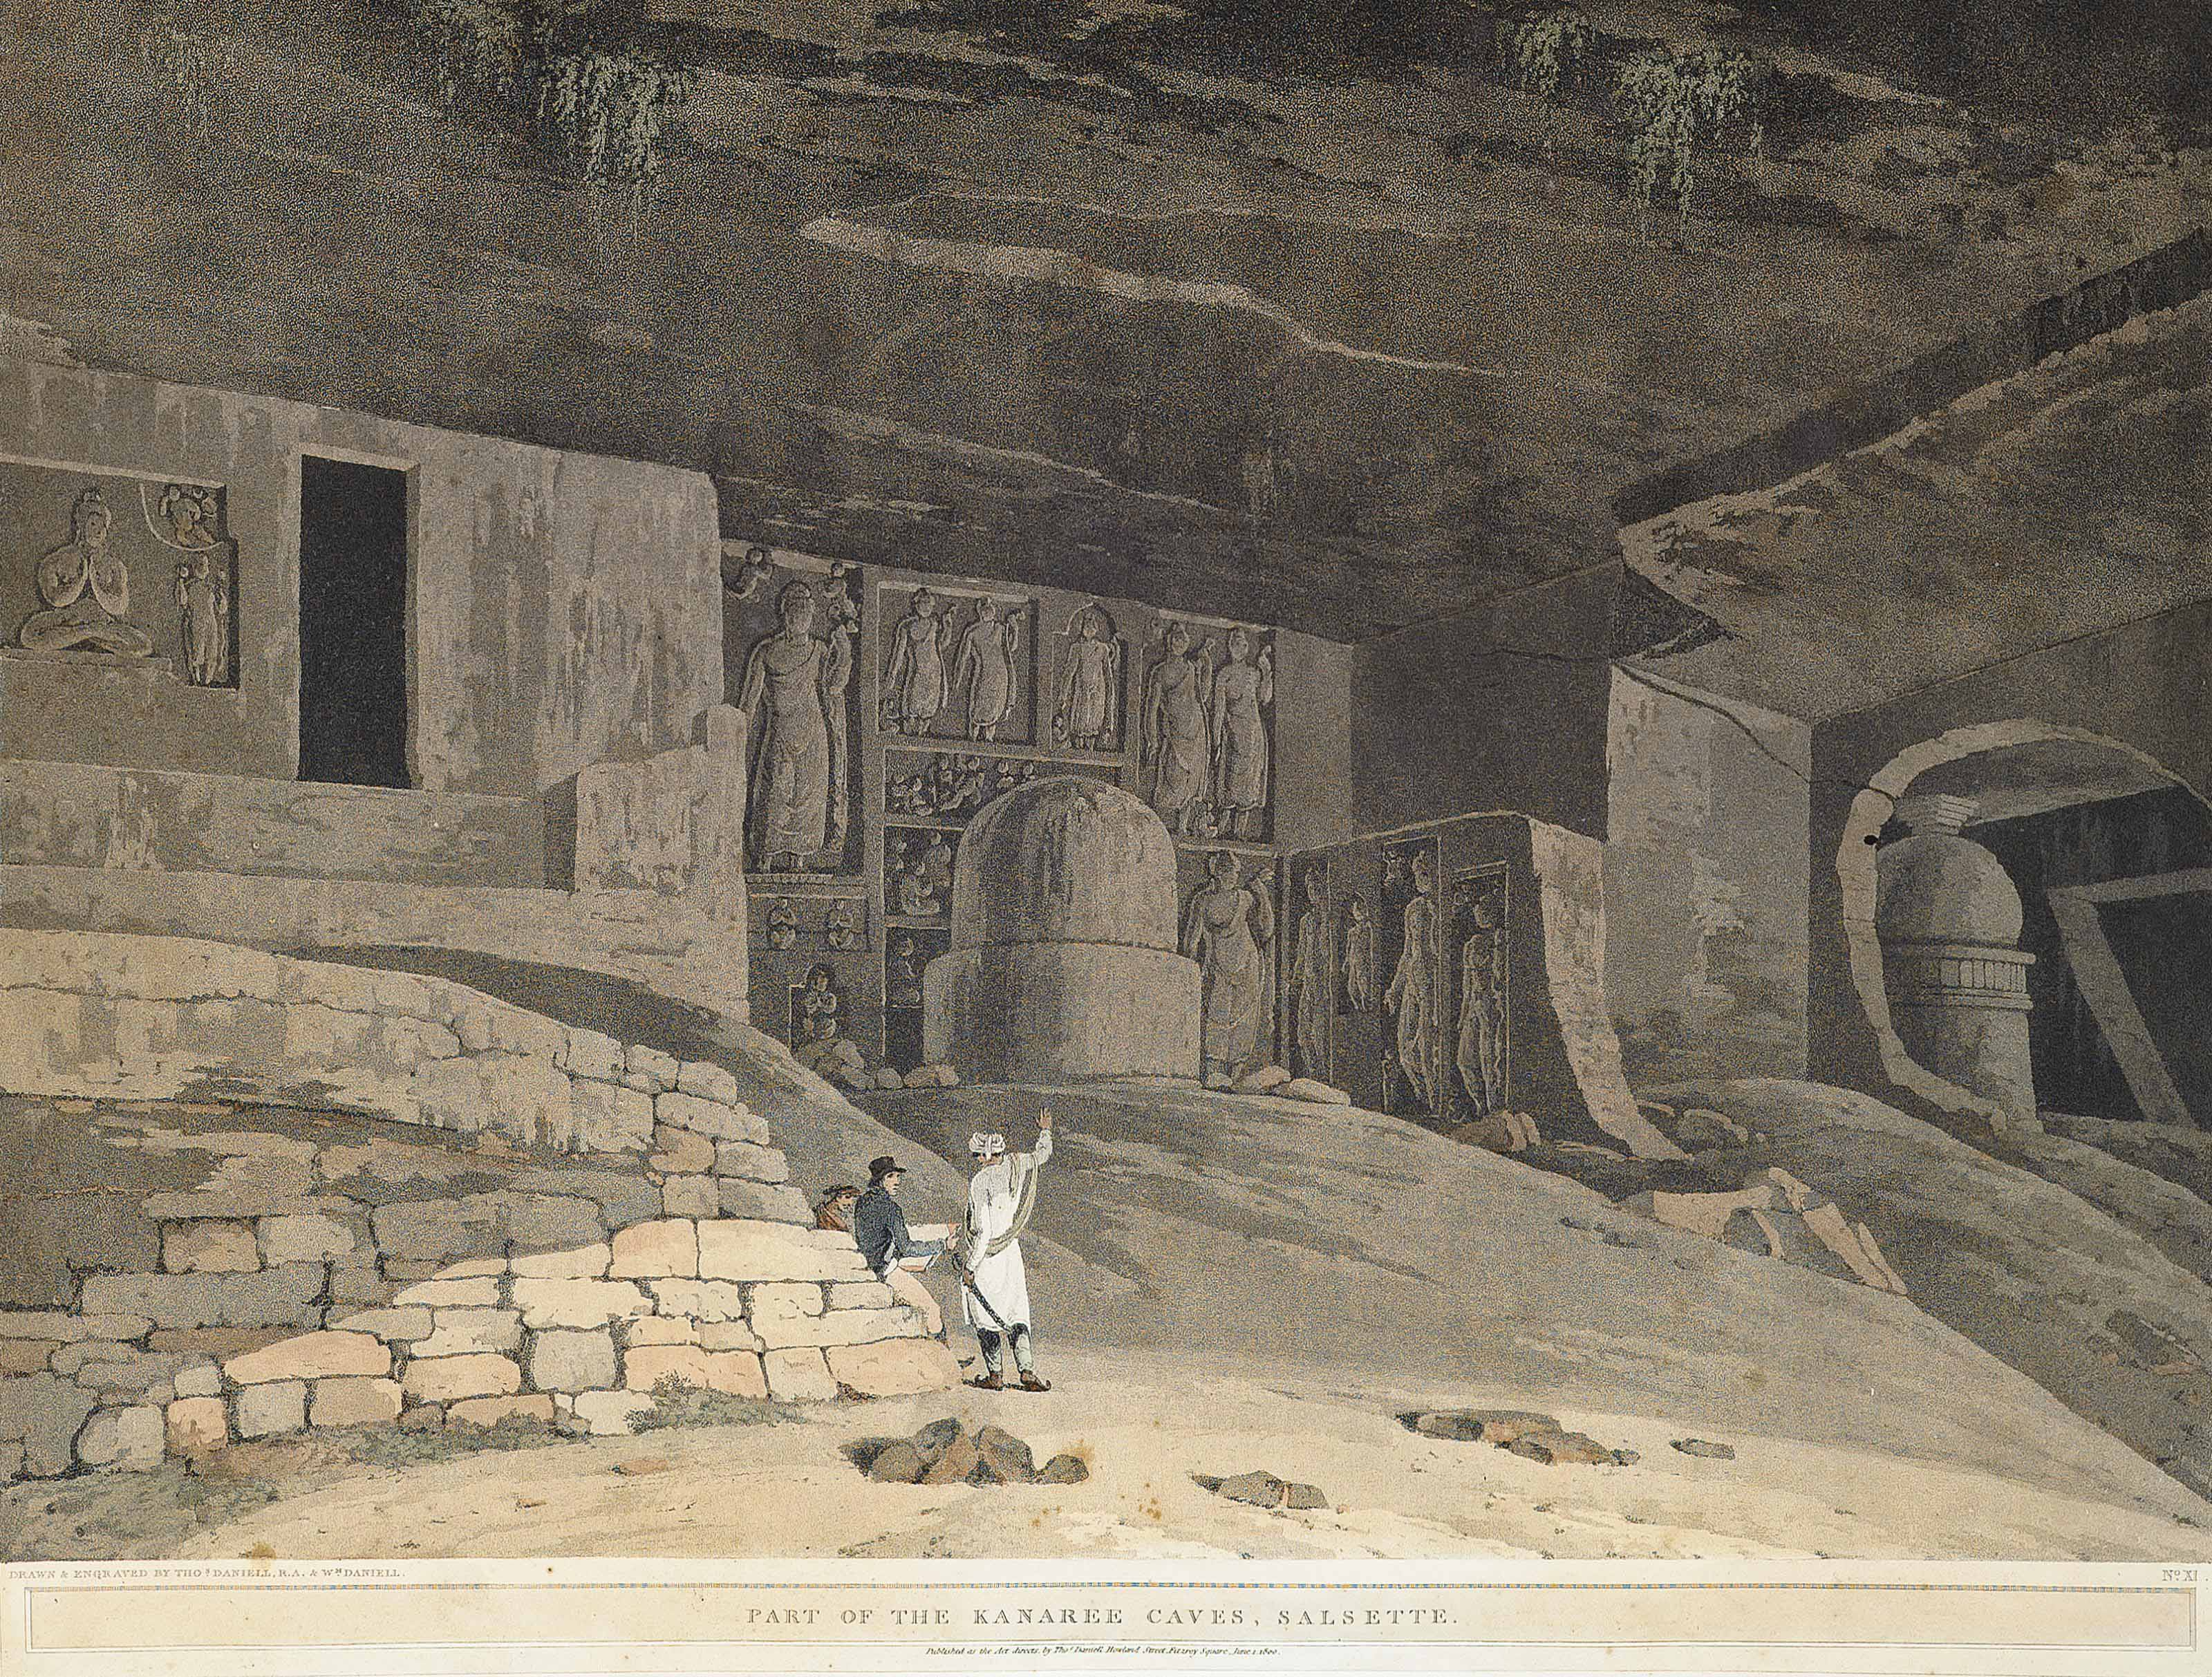 The Entrance to the Elephanta Cave; and Part of the Kanaree Caves, Salsette (Abbey Travel 420, nos. 58, 62)